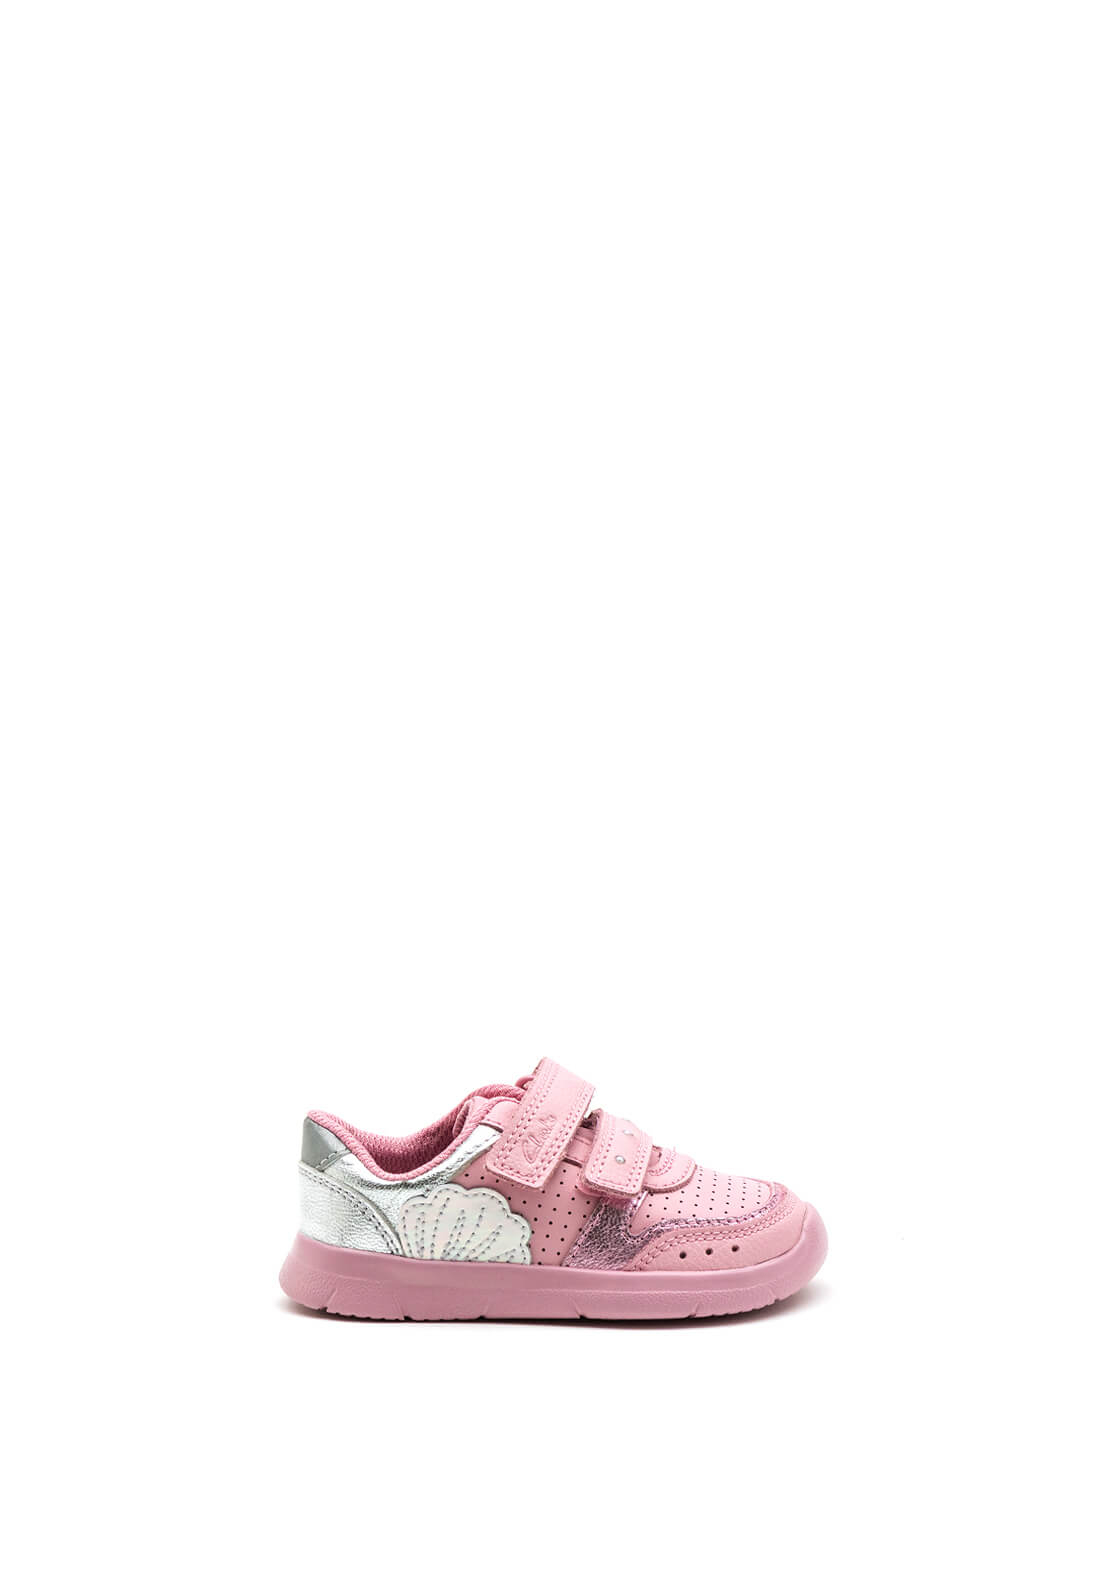 Clarks Baby Girls Ath Shell Trainers, Pink